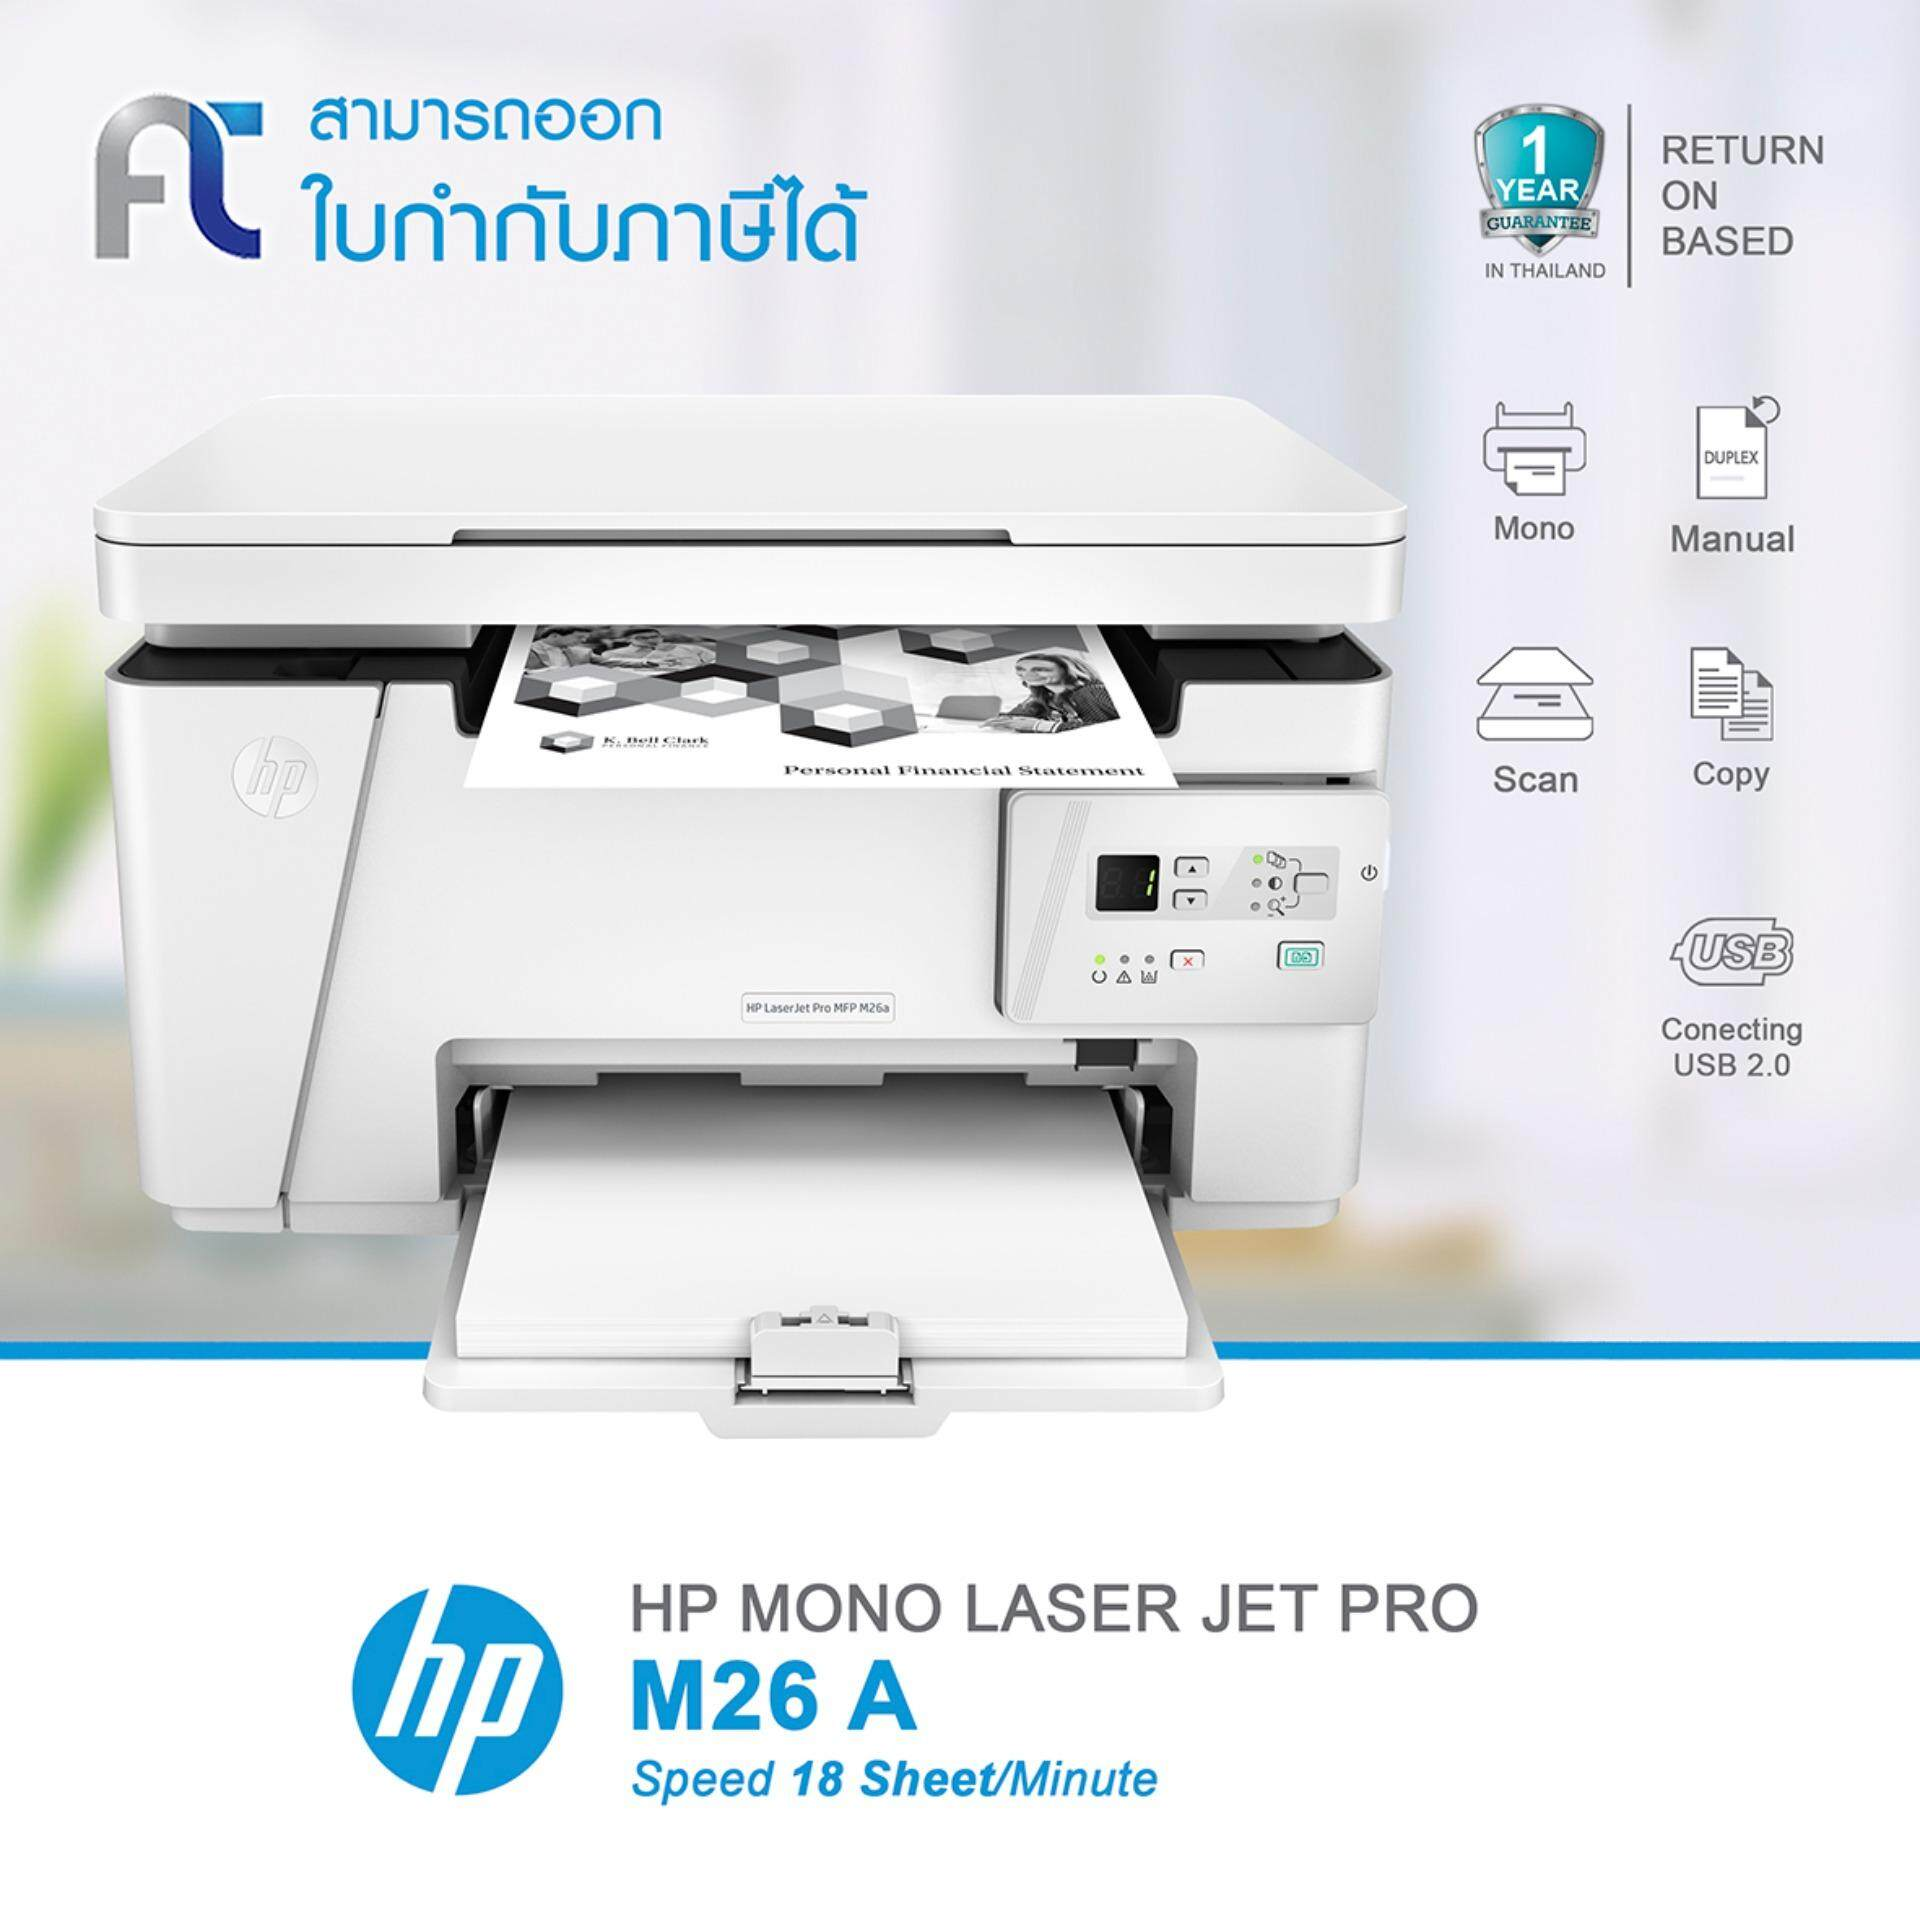 ขาย 1 Year Warranty Hp Laserjet Pro Mfp M26A Printer Print Copy Scan T0L49A เป็นต้นฉบับ